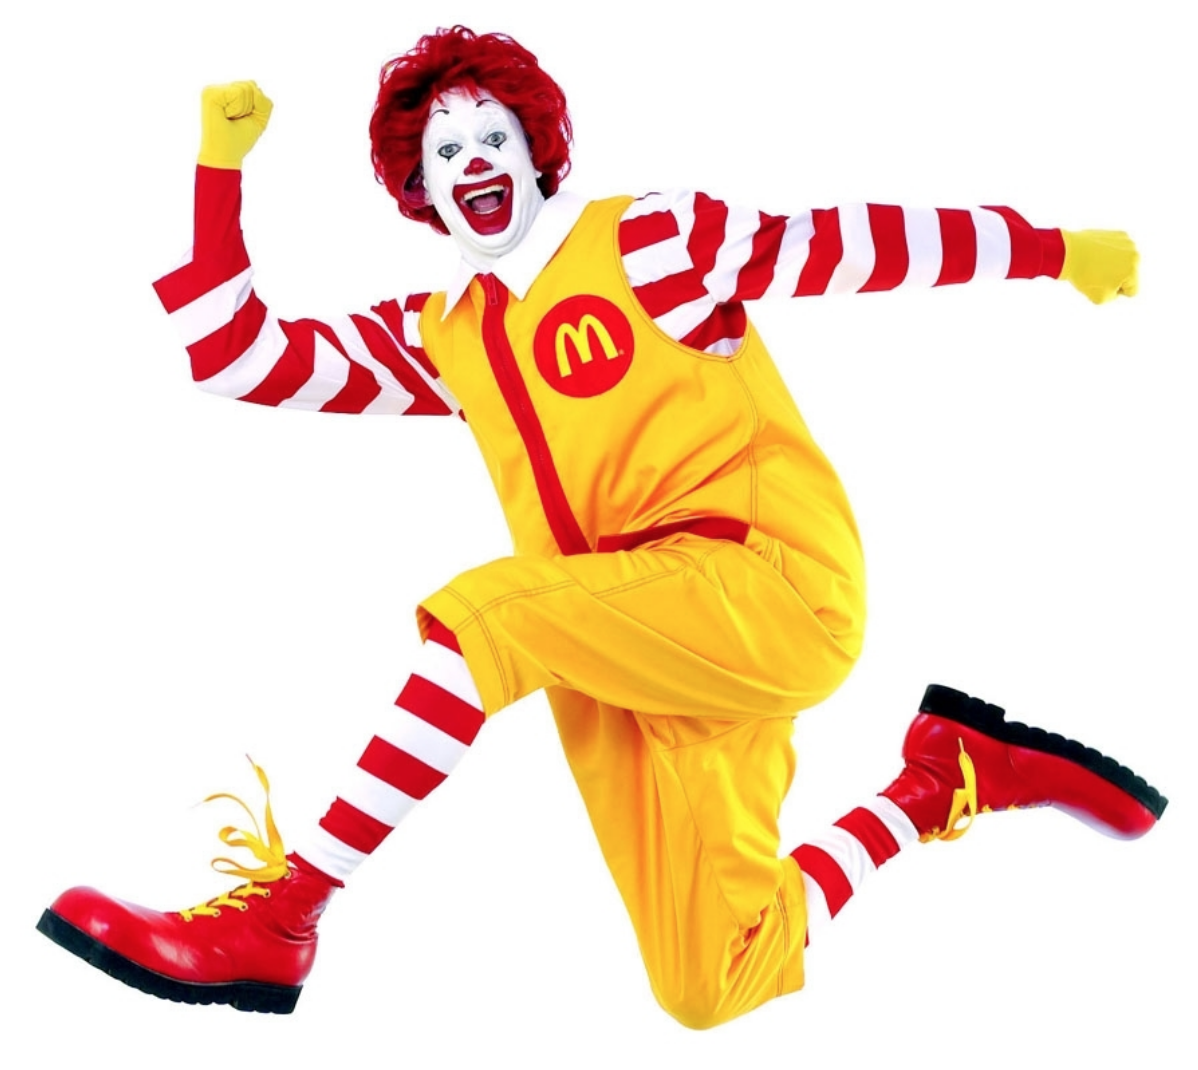 Roald McDonald jumpig